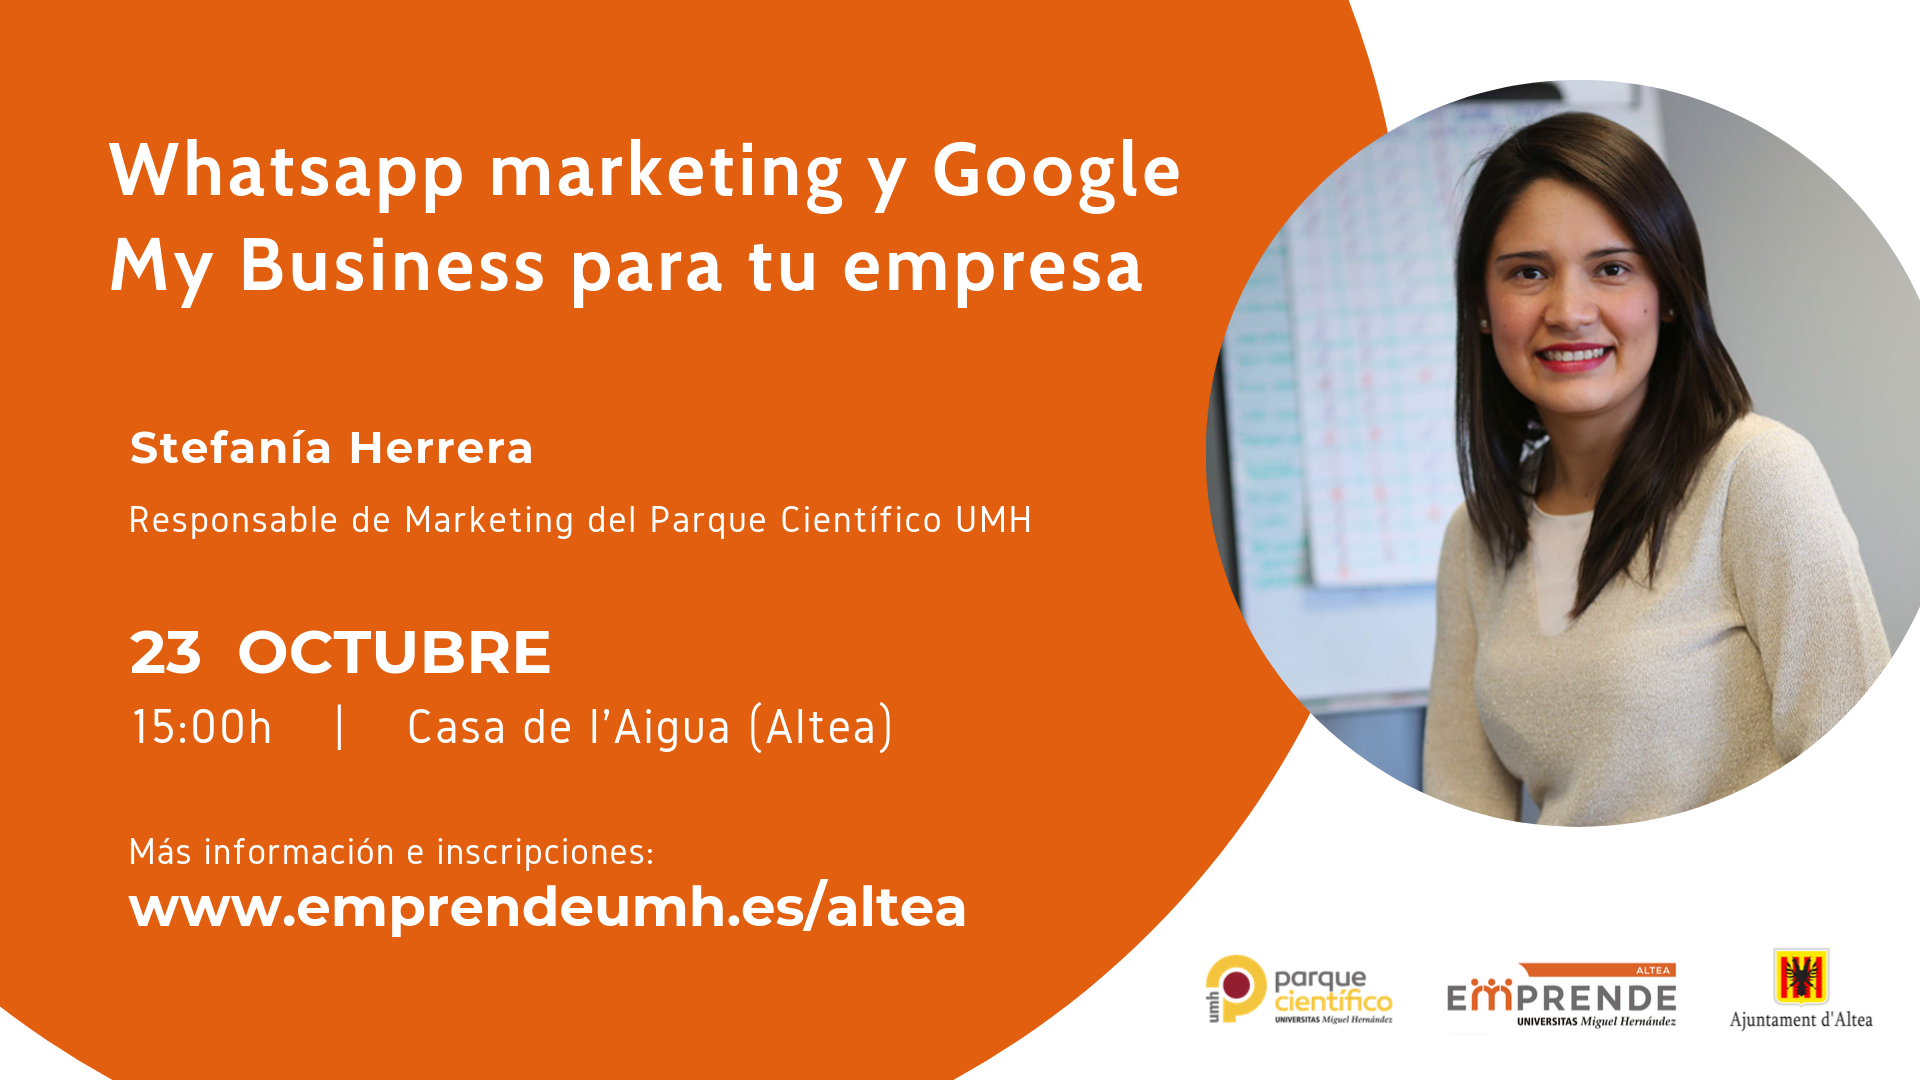 Whatsapp marketing y Google My Business para empresas